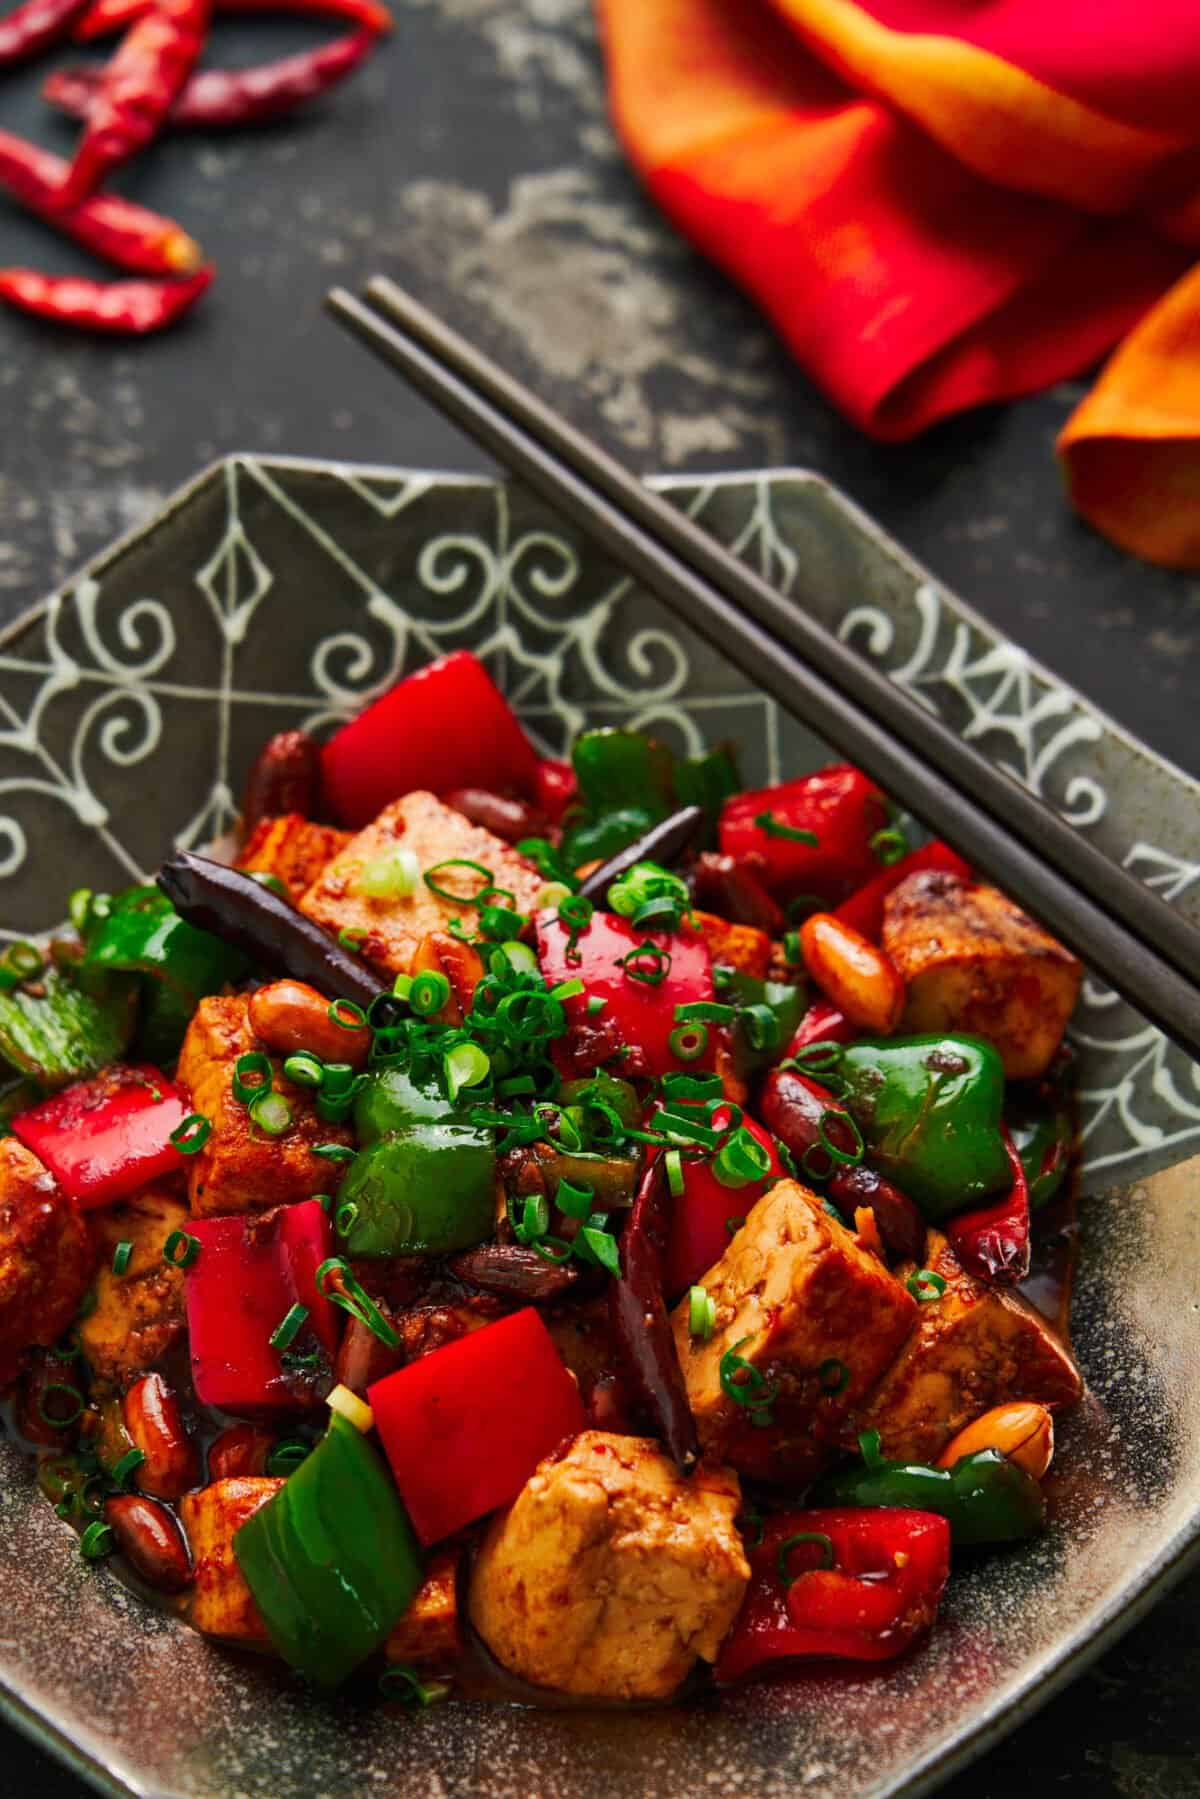 With meaty chunks of tofu that are seasoned to the core, crunchy peanuts, and crisp peppers glazed in a mouthwatering savory, sweet, sour, and spicy sauce, this easy Kung Pao Tofu is a delicious stir-fry that may be meatless, but it's flavor full!